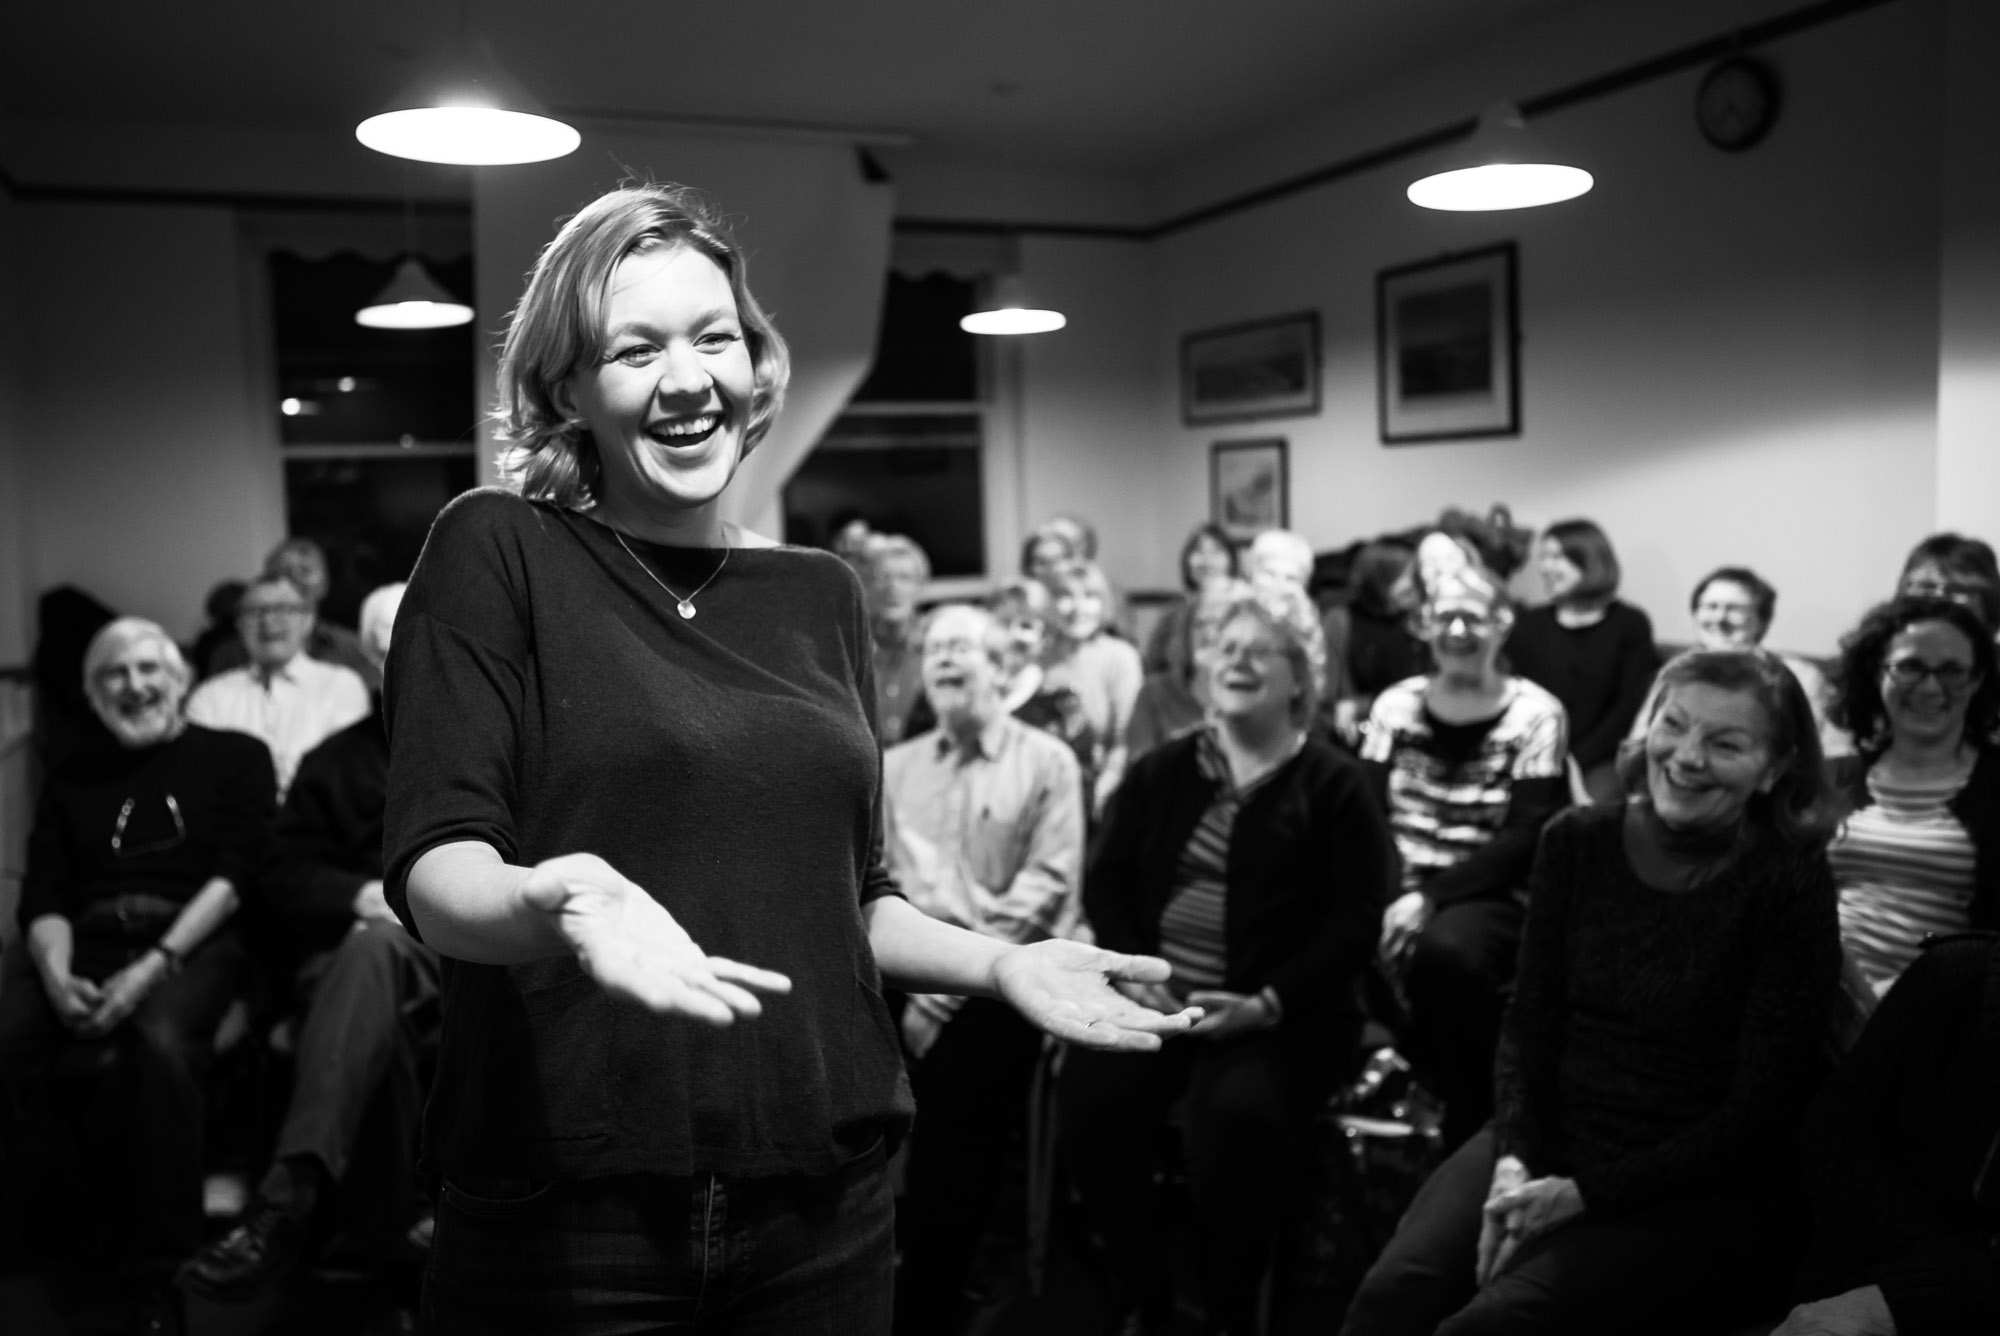 Anna Tabbush - Anna is made of music. Brilliant composer, arranger, choral director, musician, human and wonderful friend to the Dirts, Anna is simply superduper. We shamelessly steal and defile her wonderful arrangements for some of our rudest songs. And she doesn't mind. We love Anna.